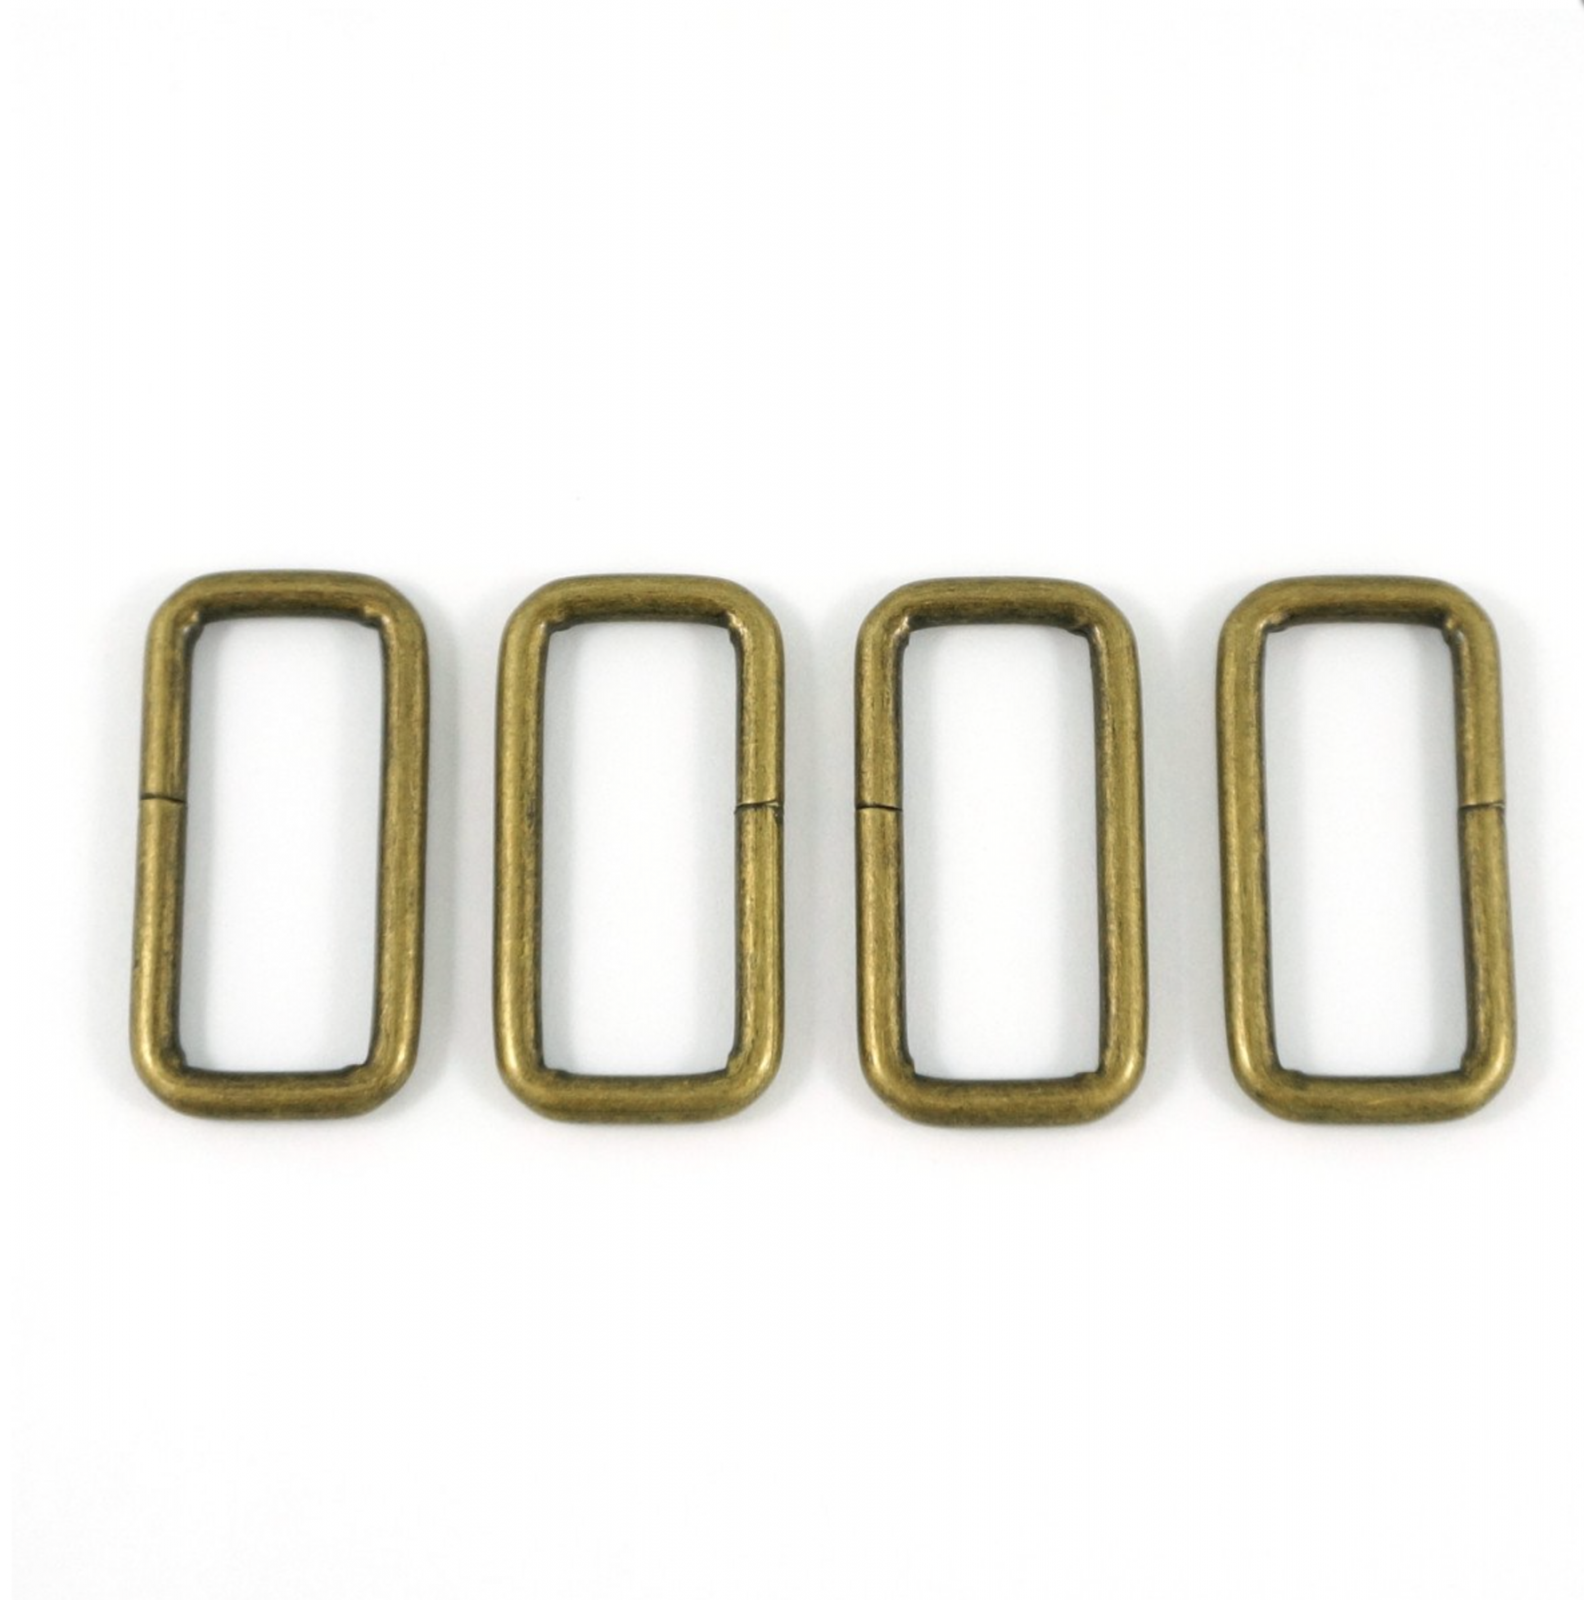 ABREC-WIRE Rectangular Rings 4 Pack 1-1/4 (32mm) Antique Brass